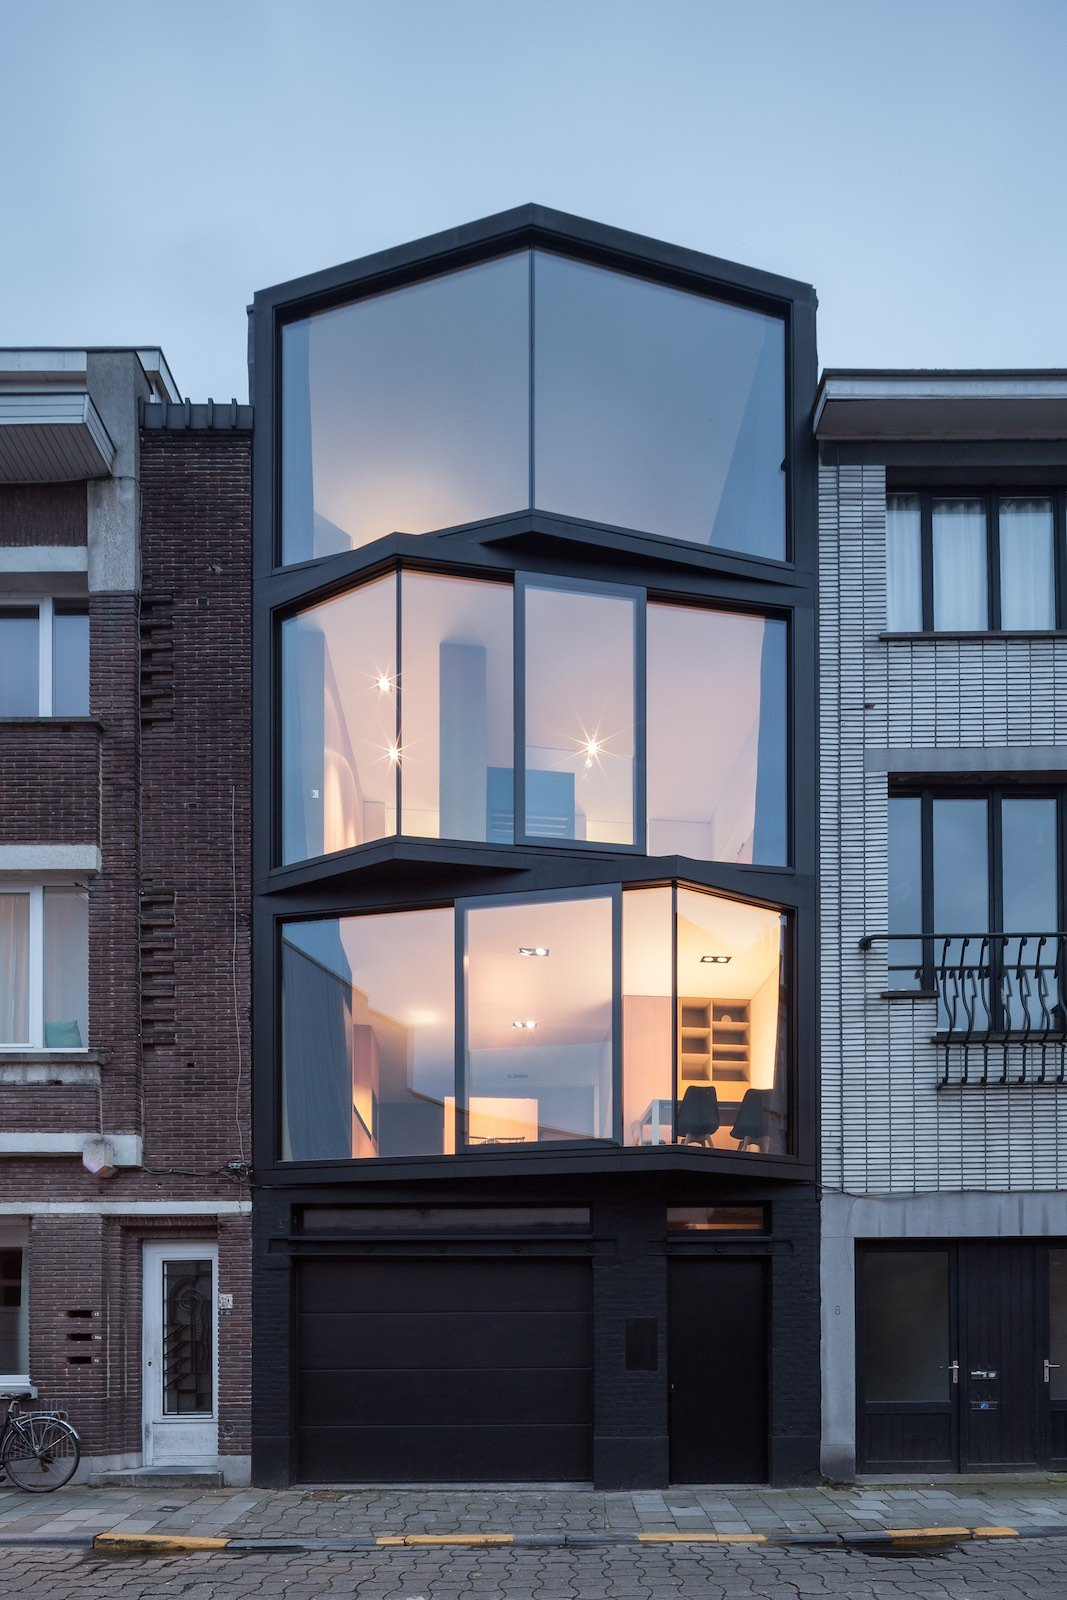 Abeel house by steven vandenborre miass architectuur for House behind a house designs